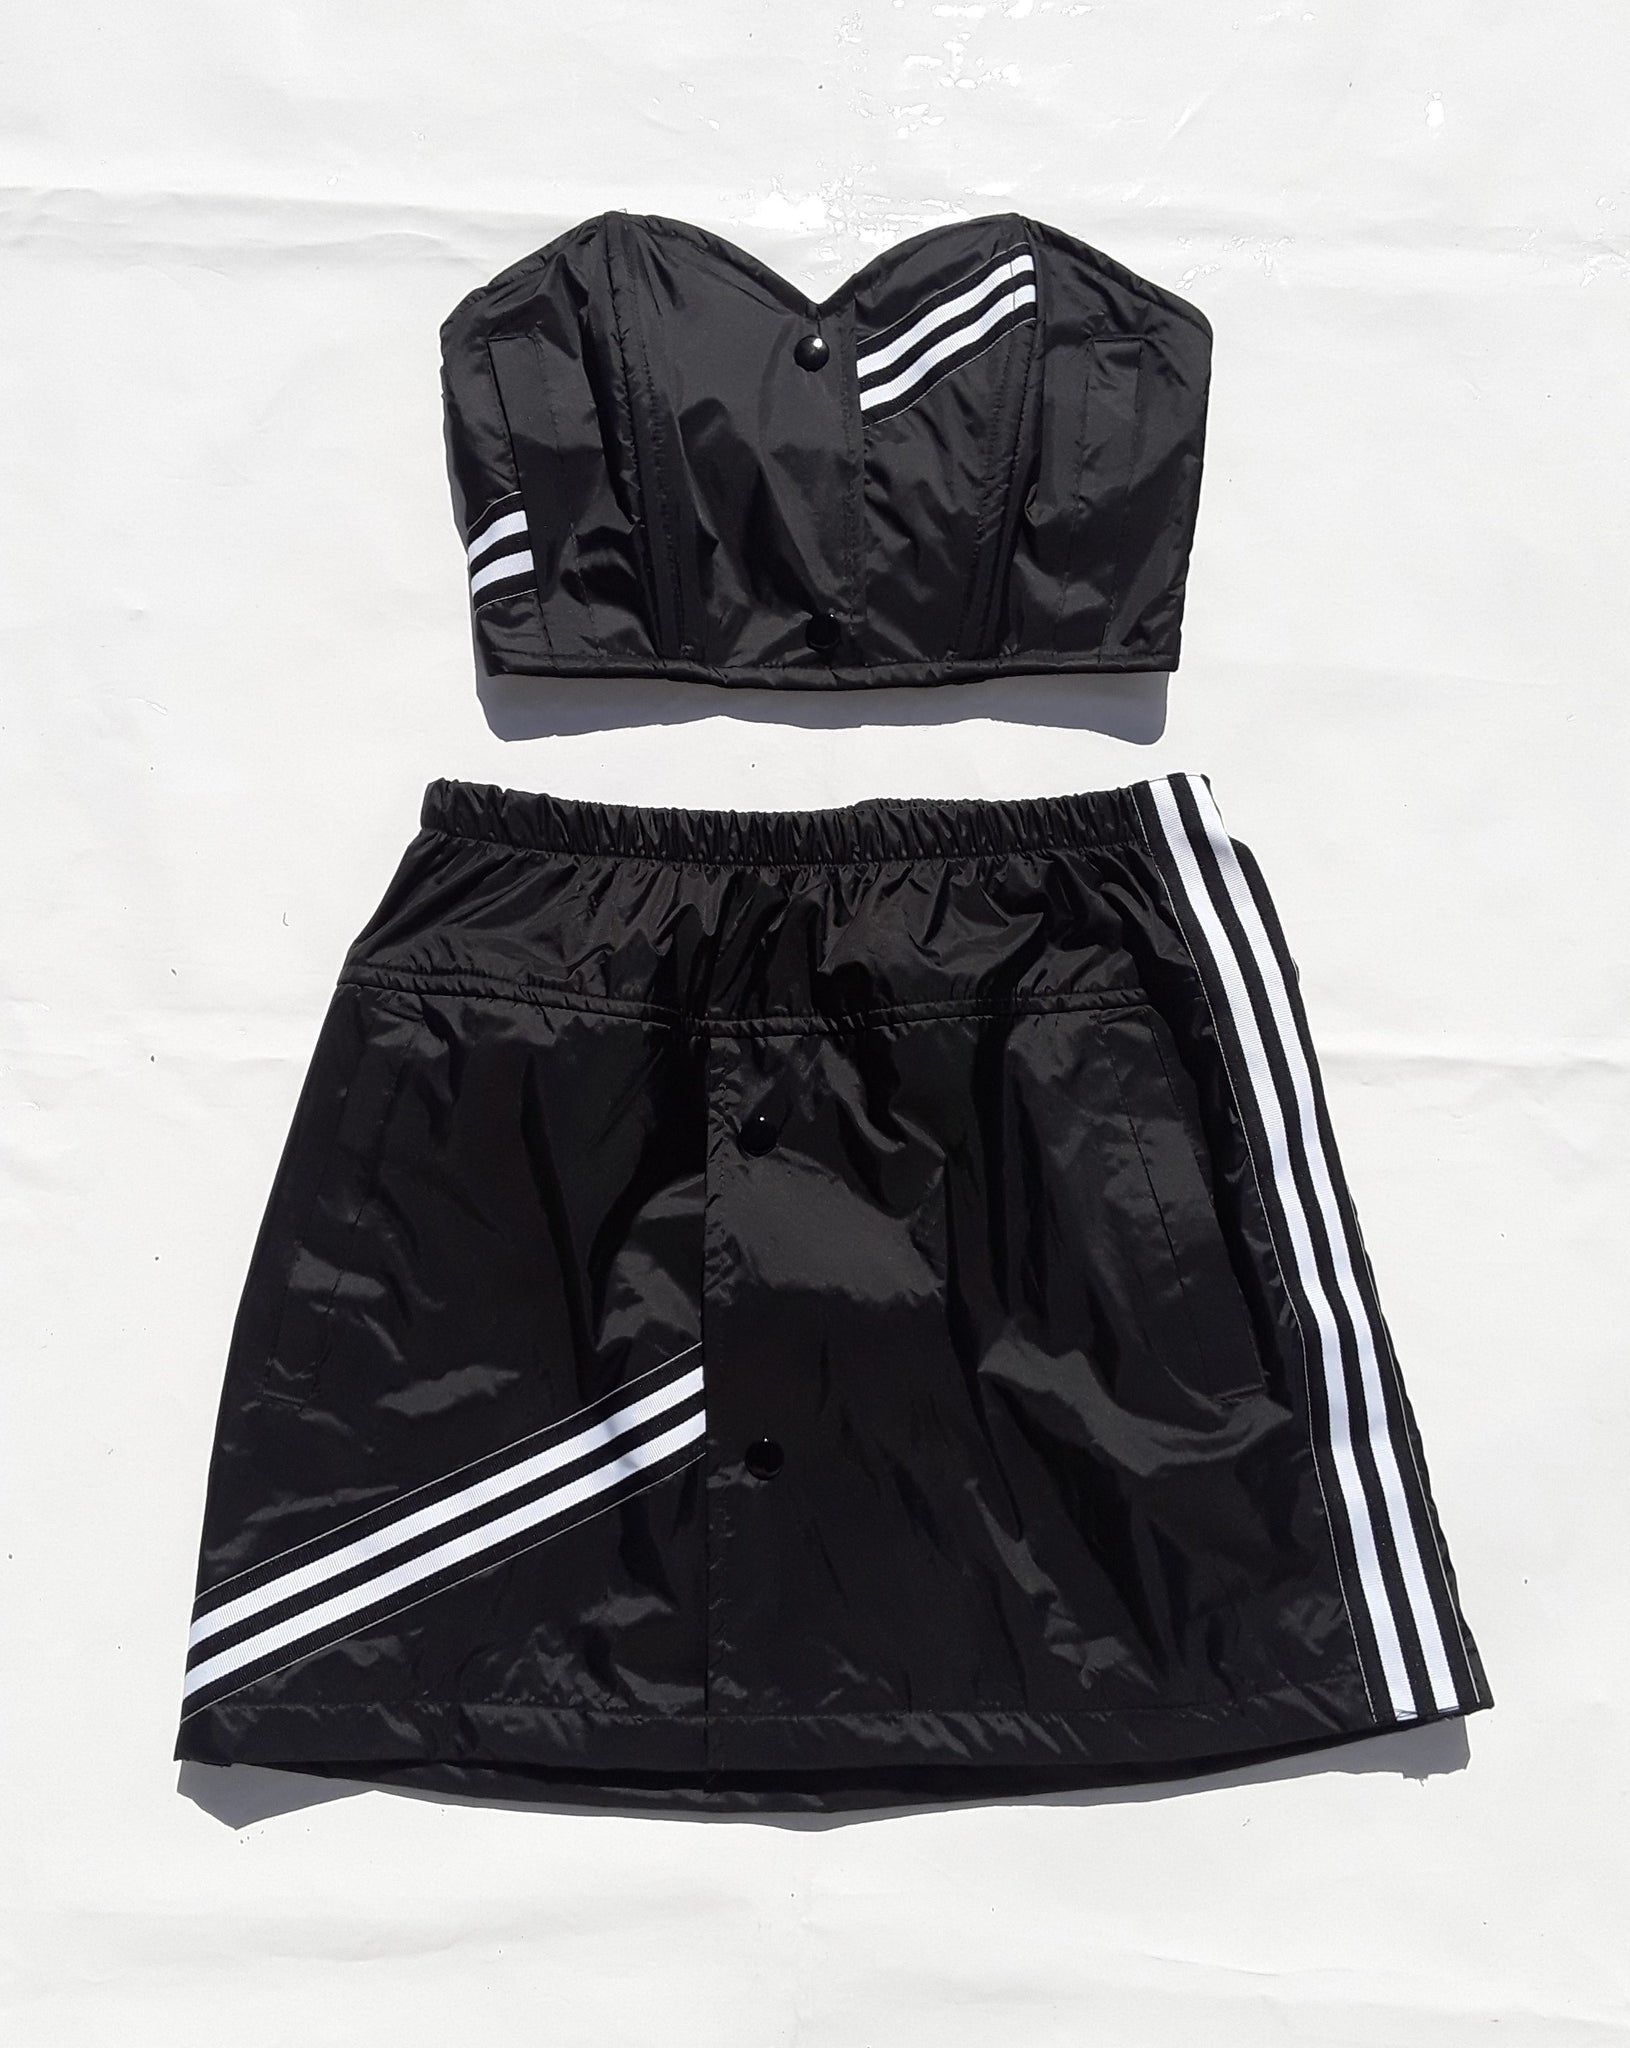 chaotic windbreaker stripe skirt